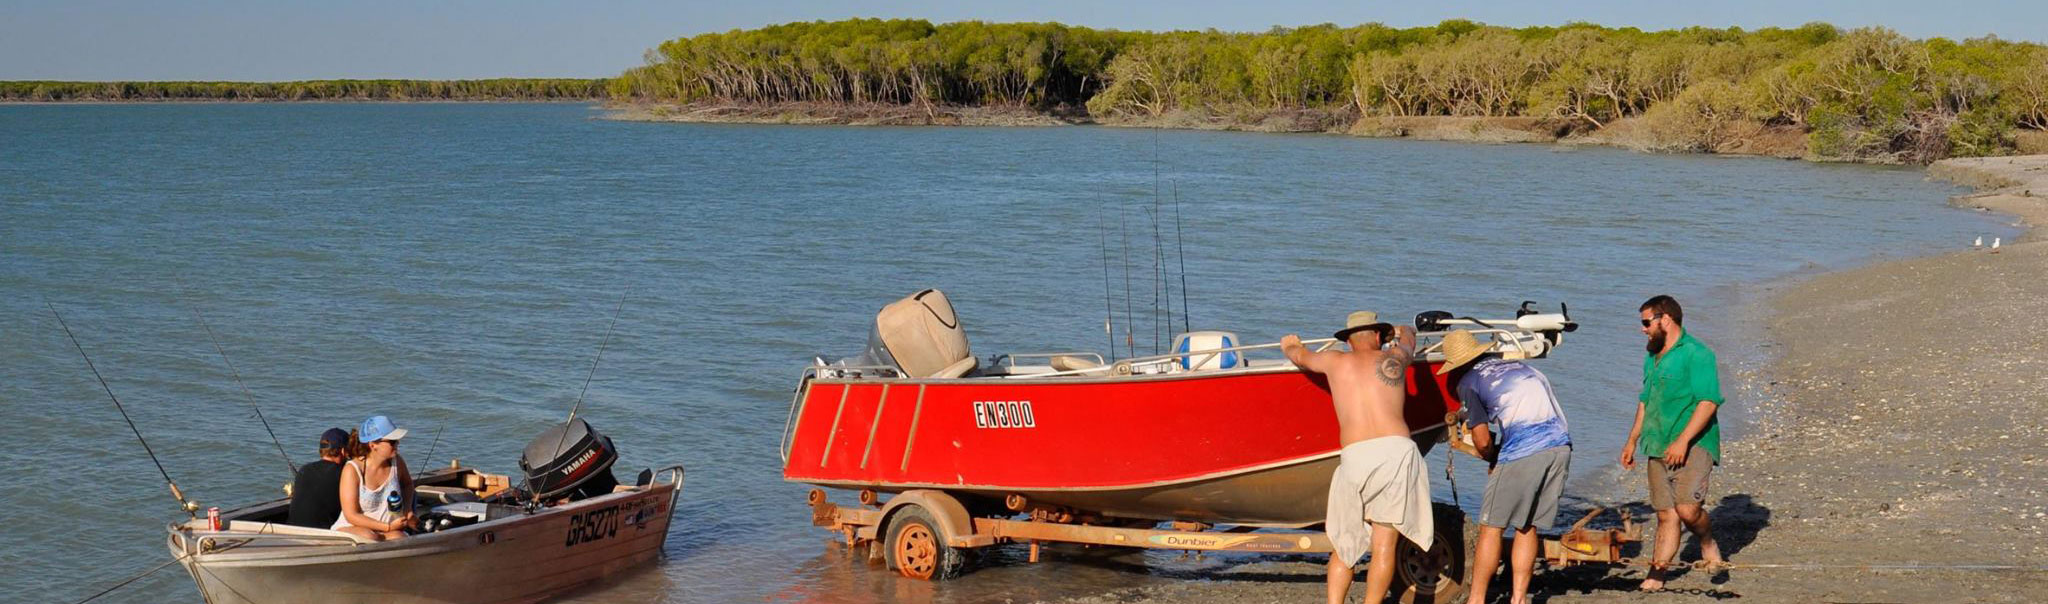 Bring Your Boat & Beach Launch